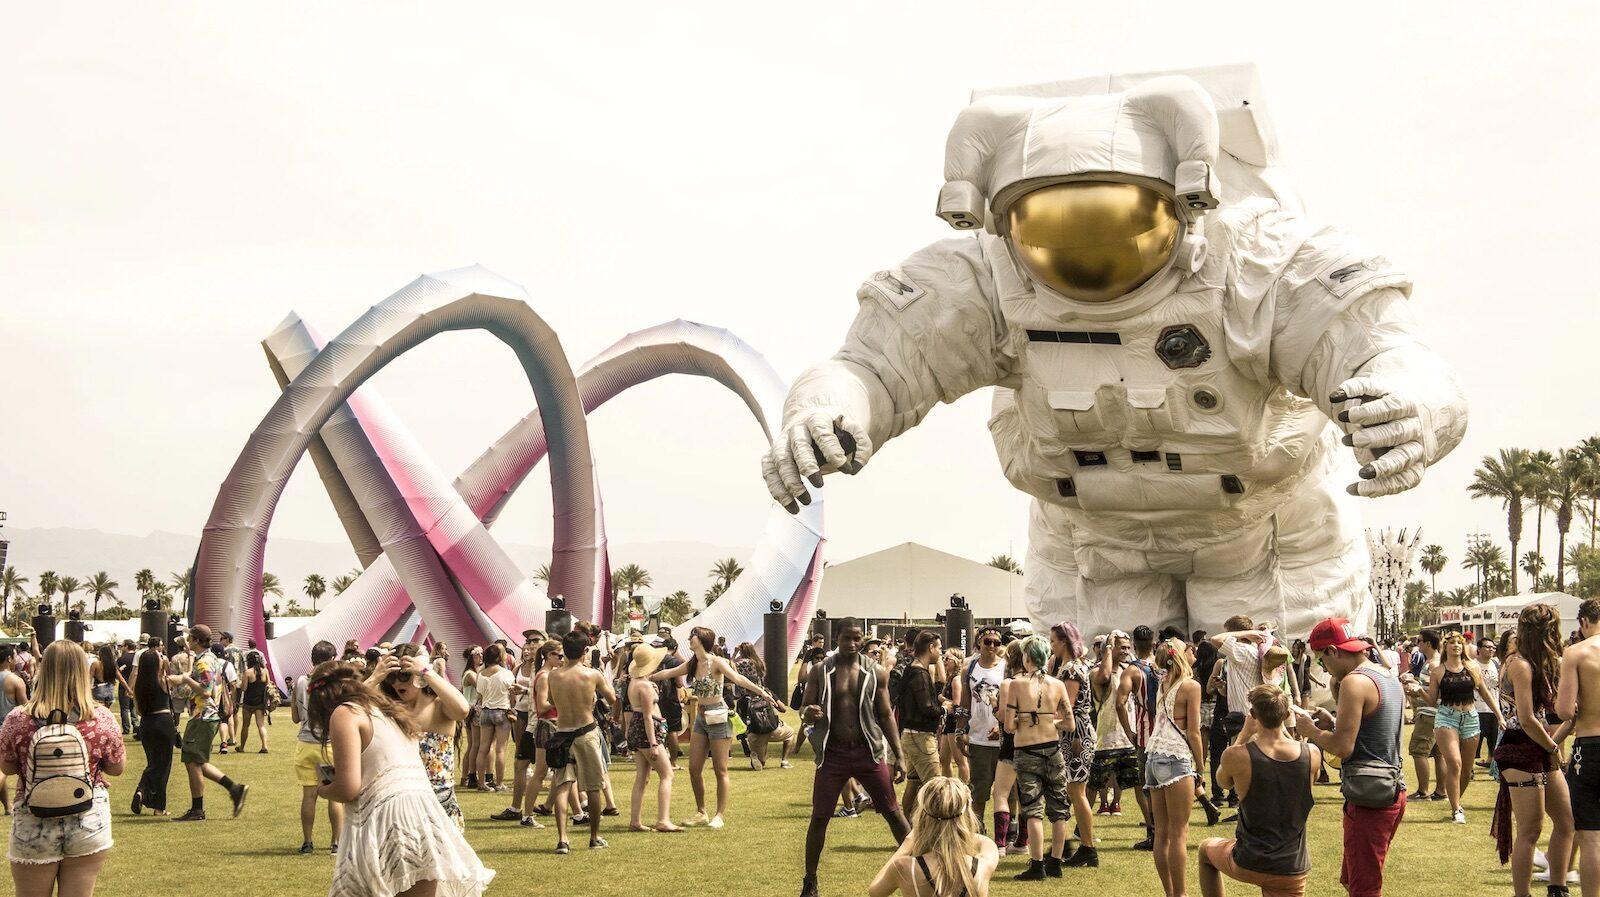 What I Wish I Knew About Coachella Before I Went